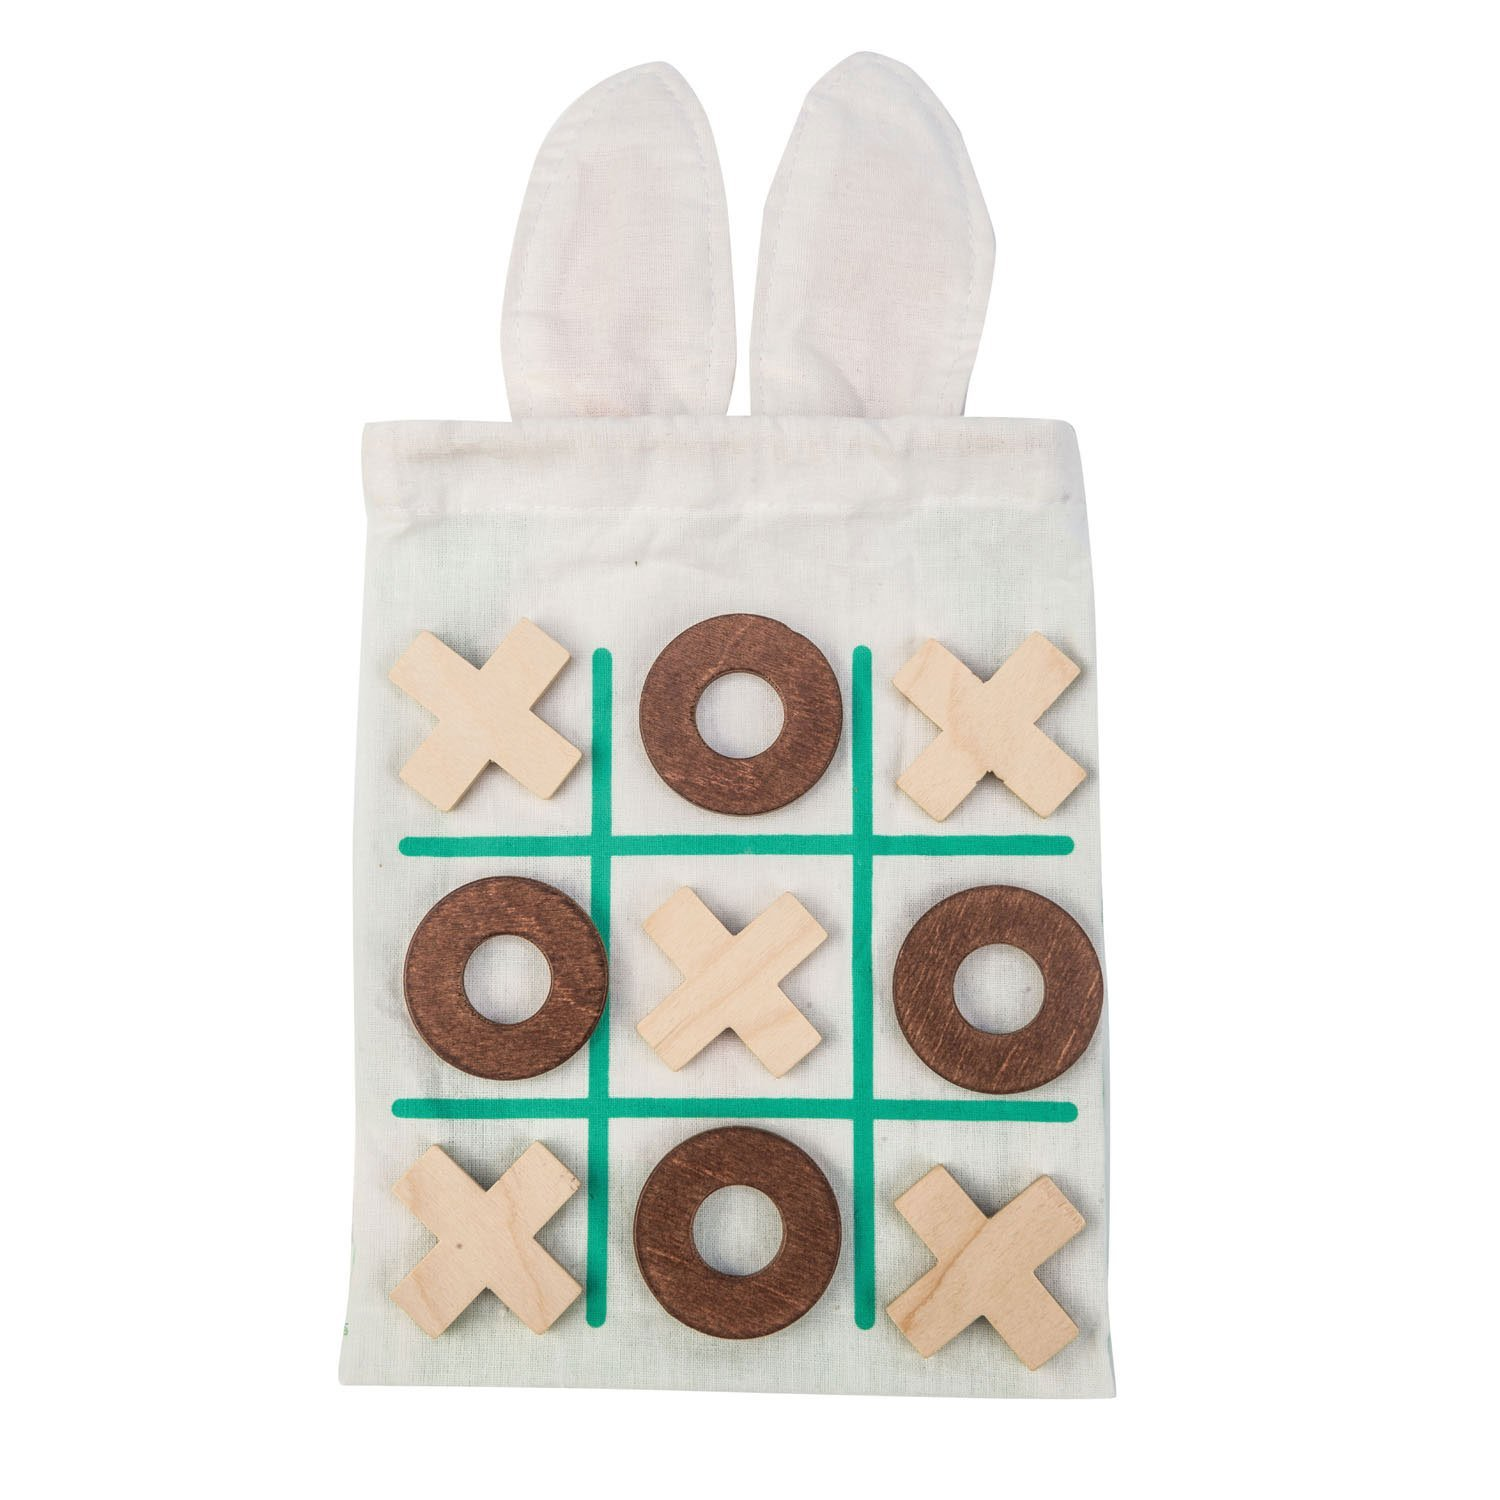 Bunny Tic Tac Toe by Tender Leaf